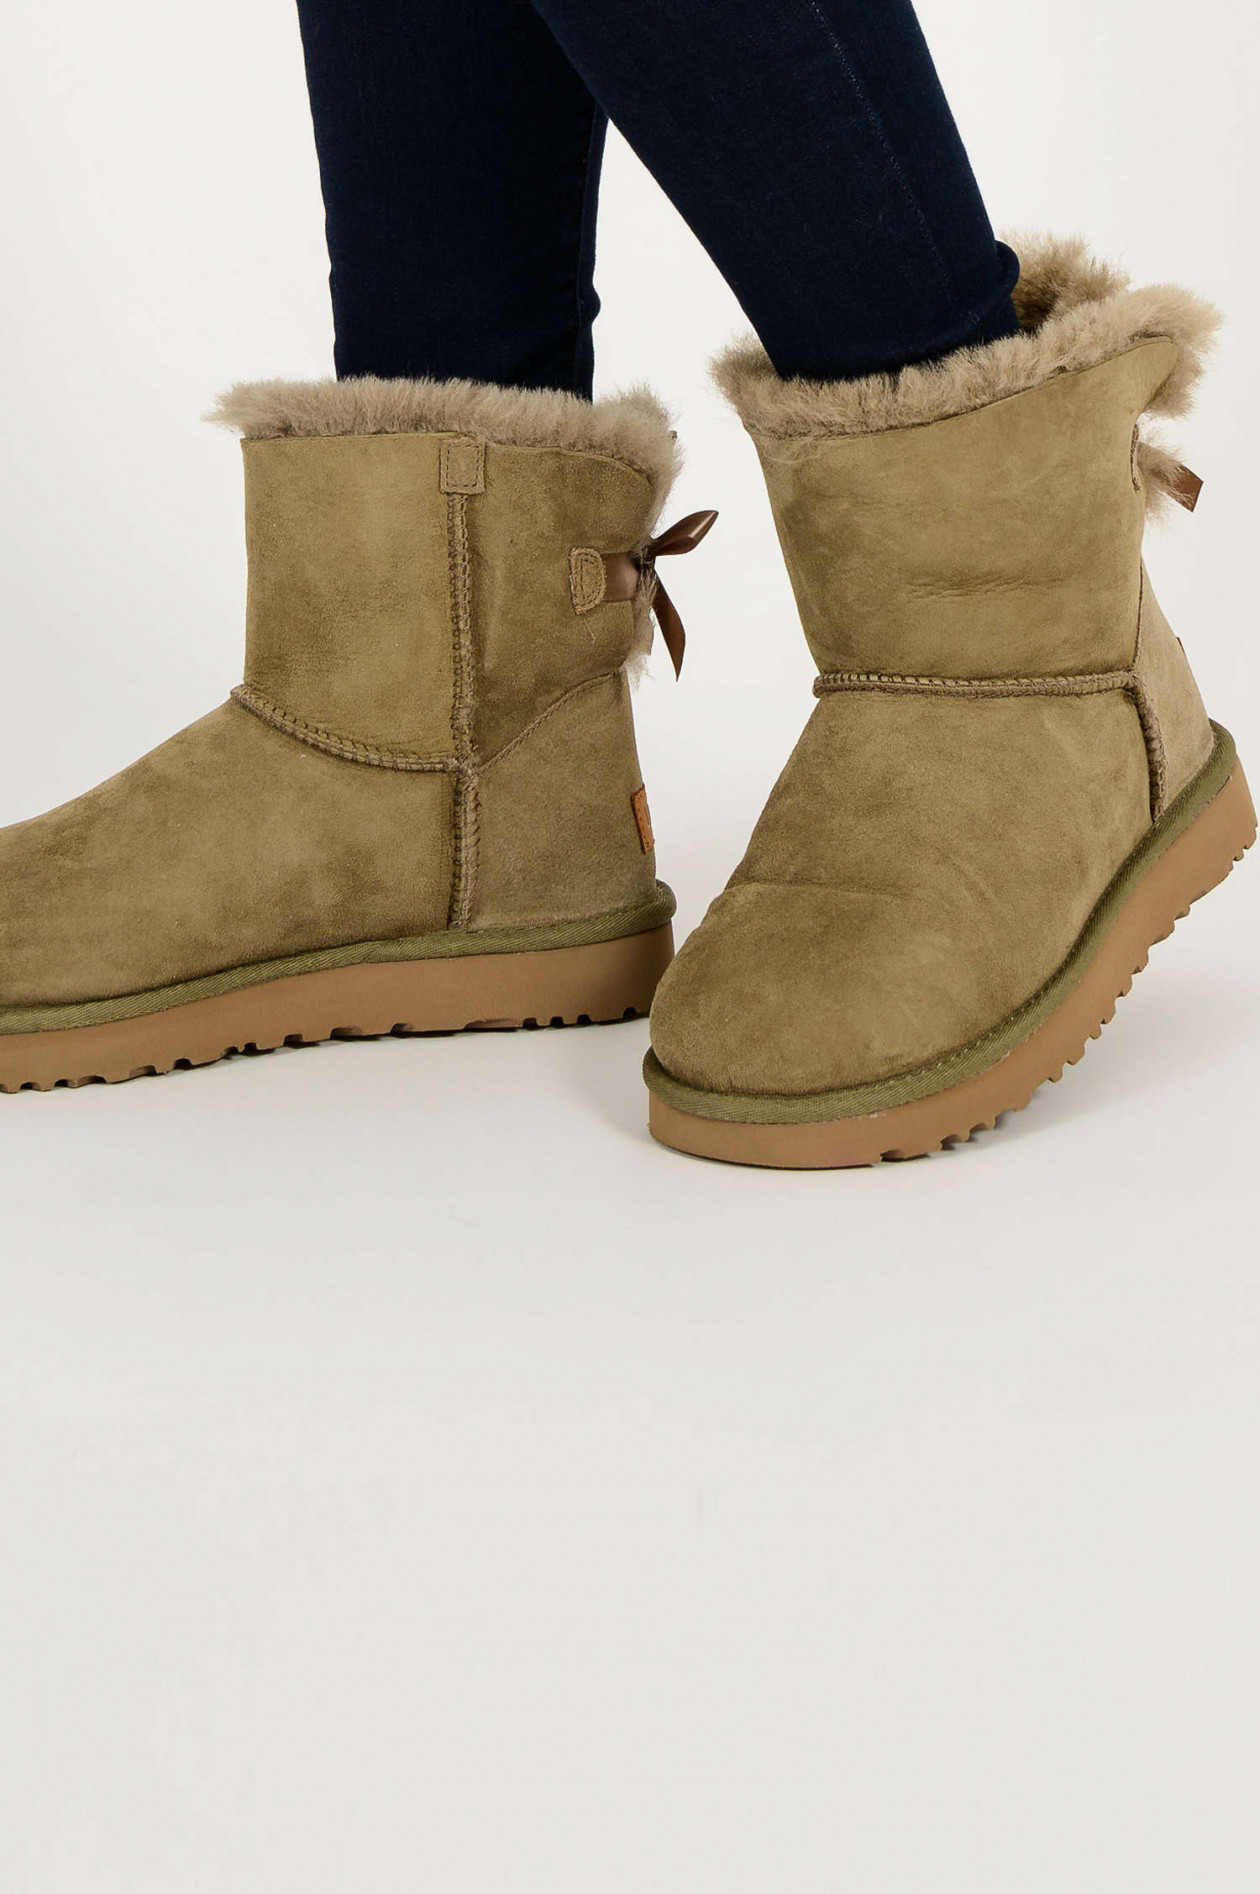 Boots MINI BAILEY BOW in Antilope Oliv